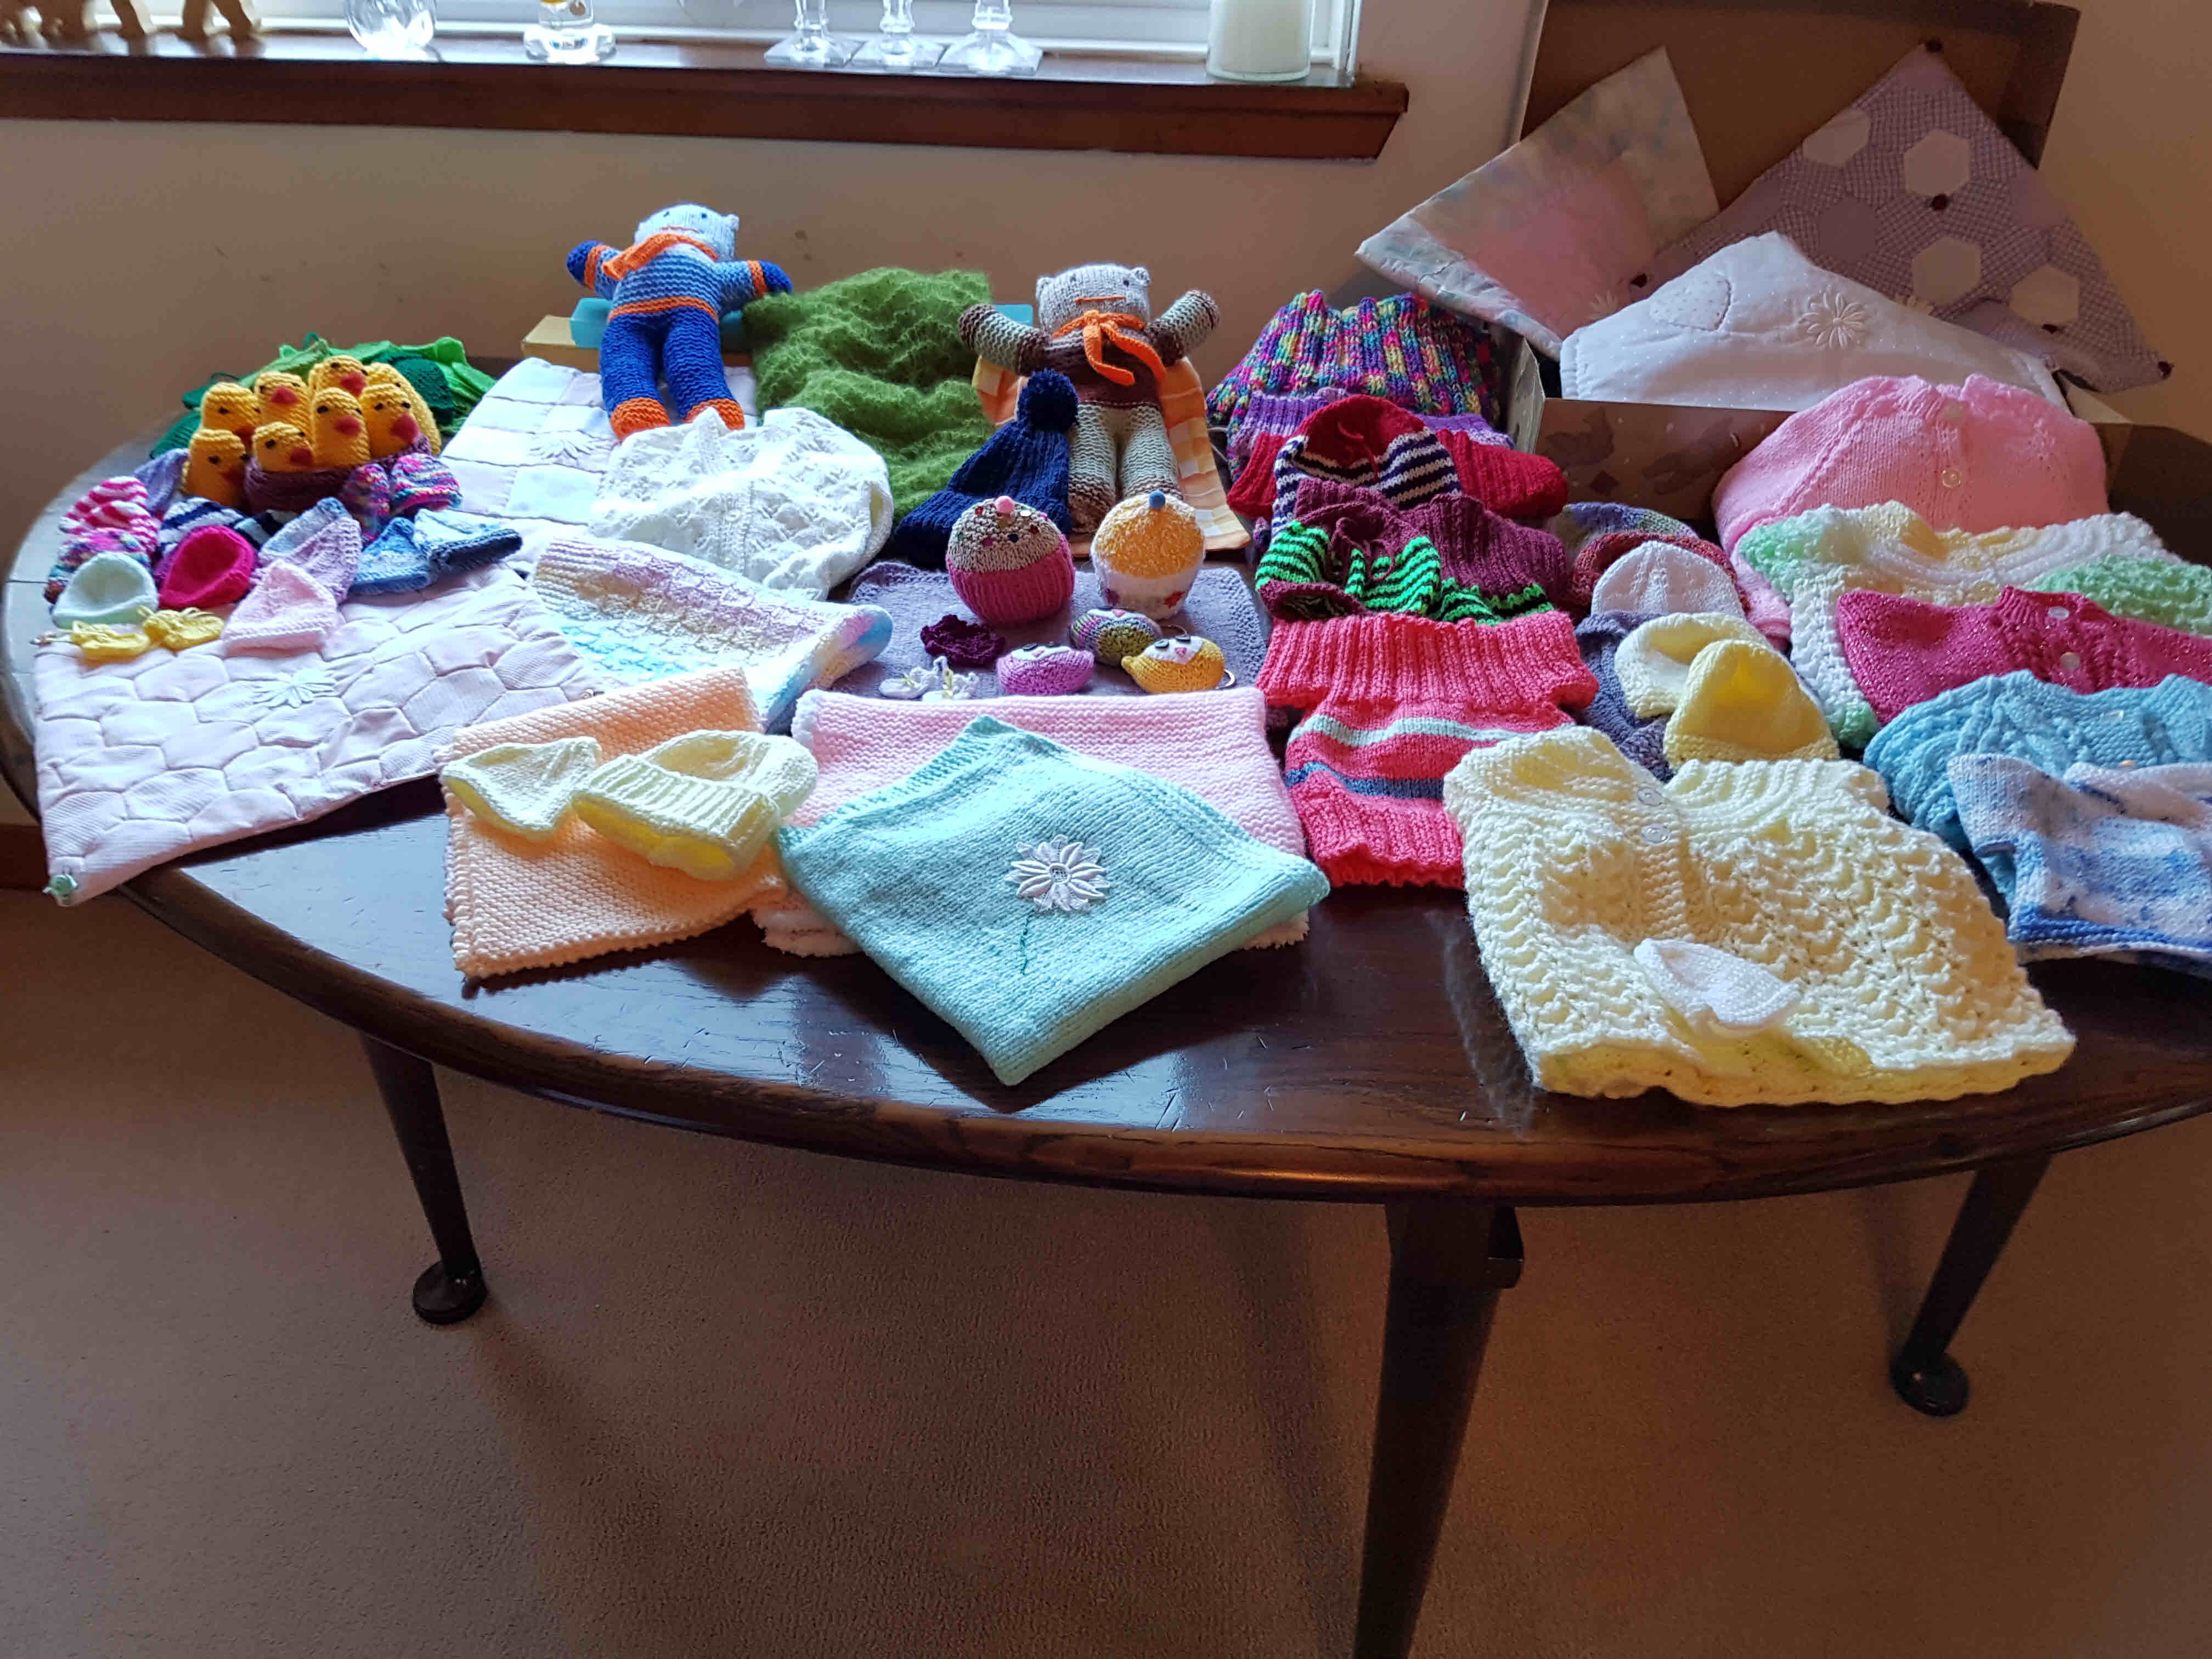 Things knitted by the group